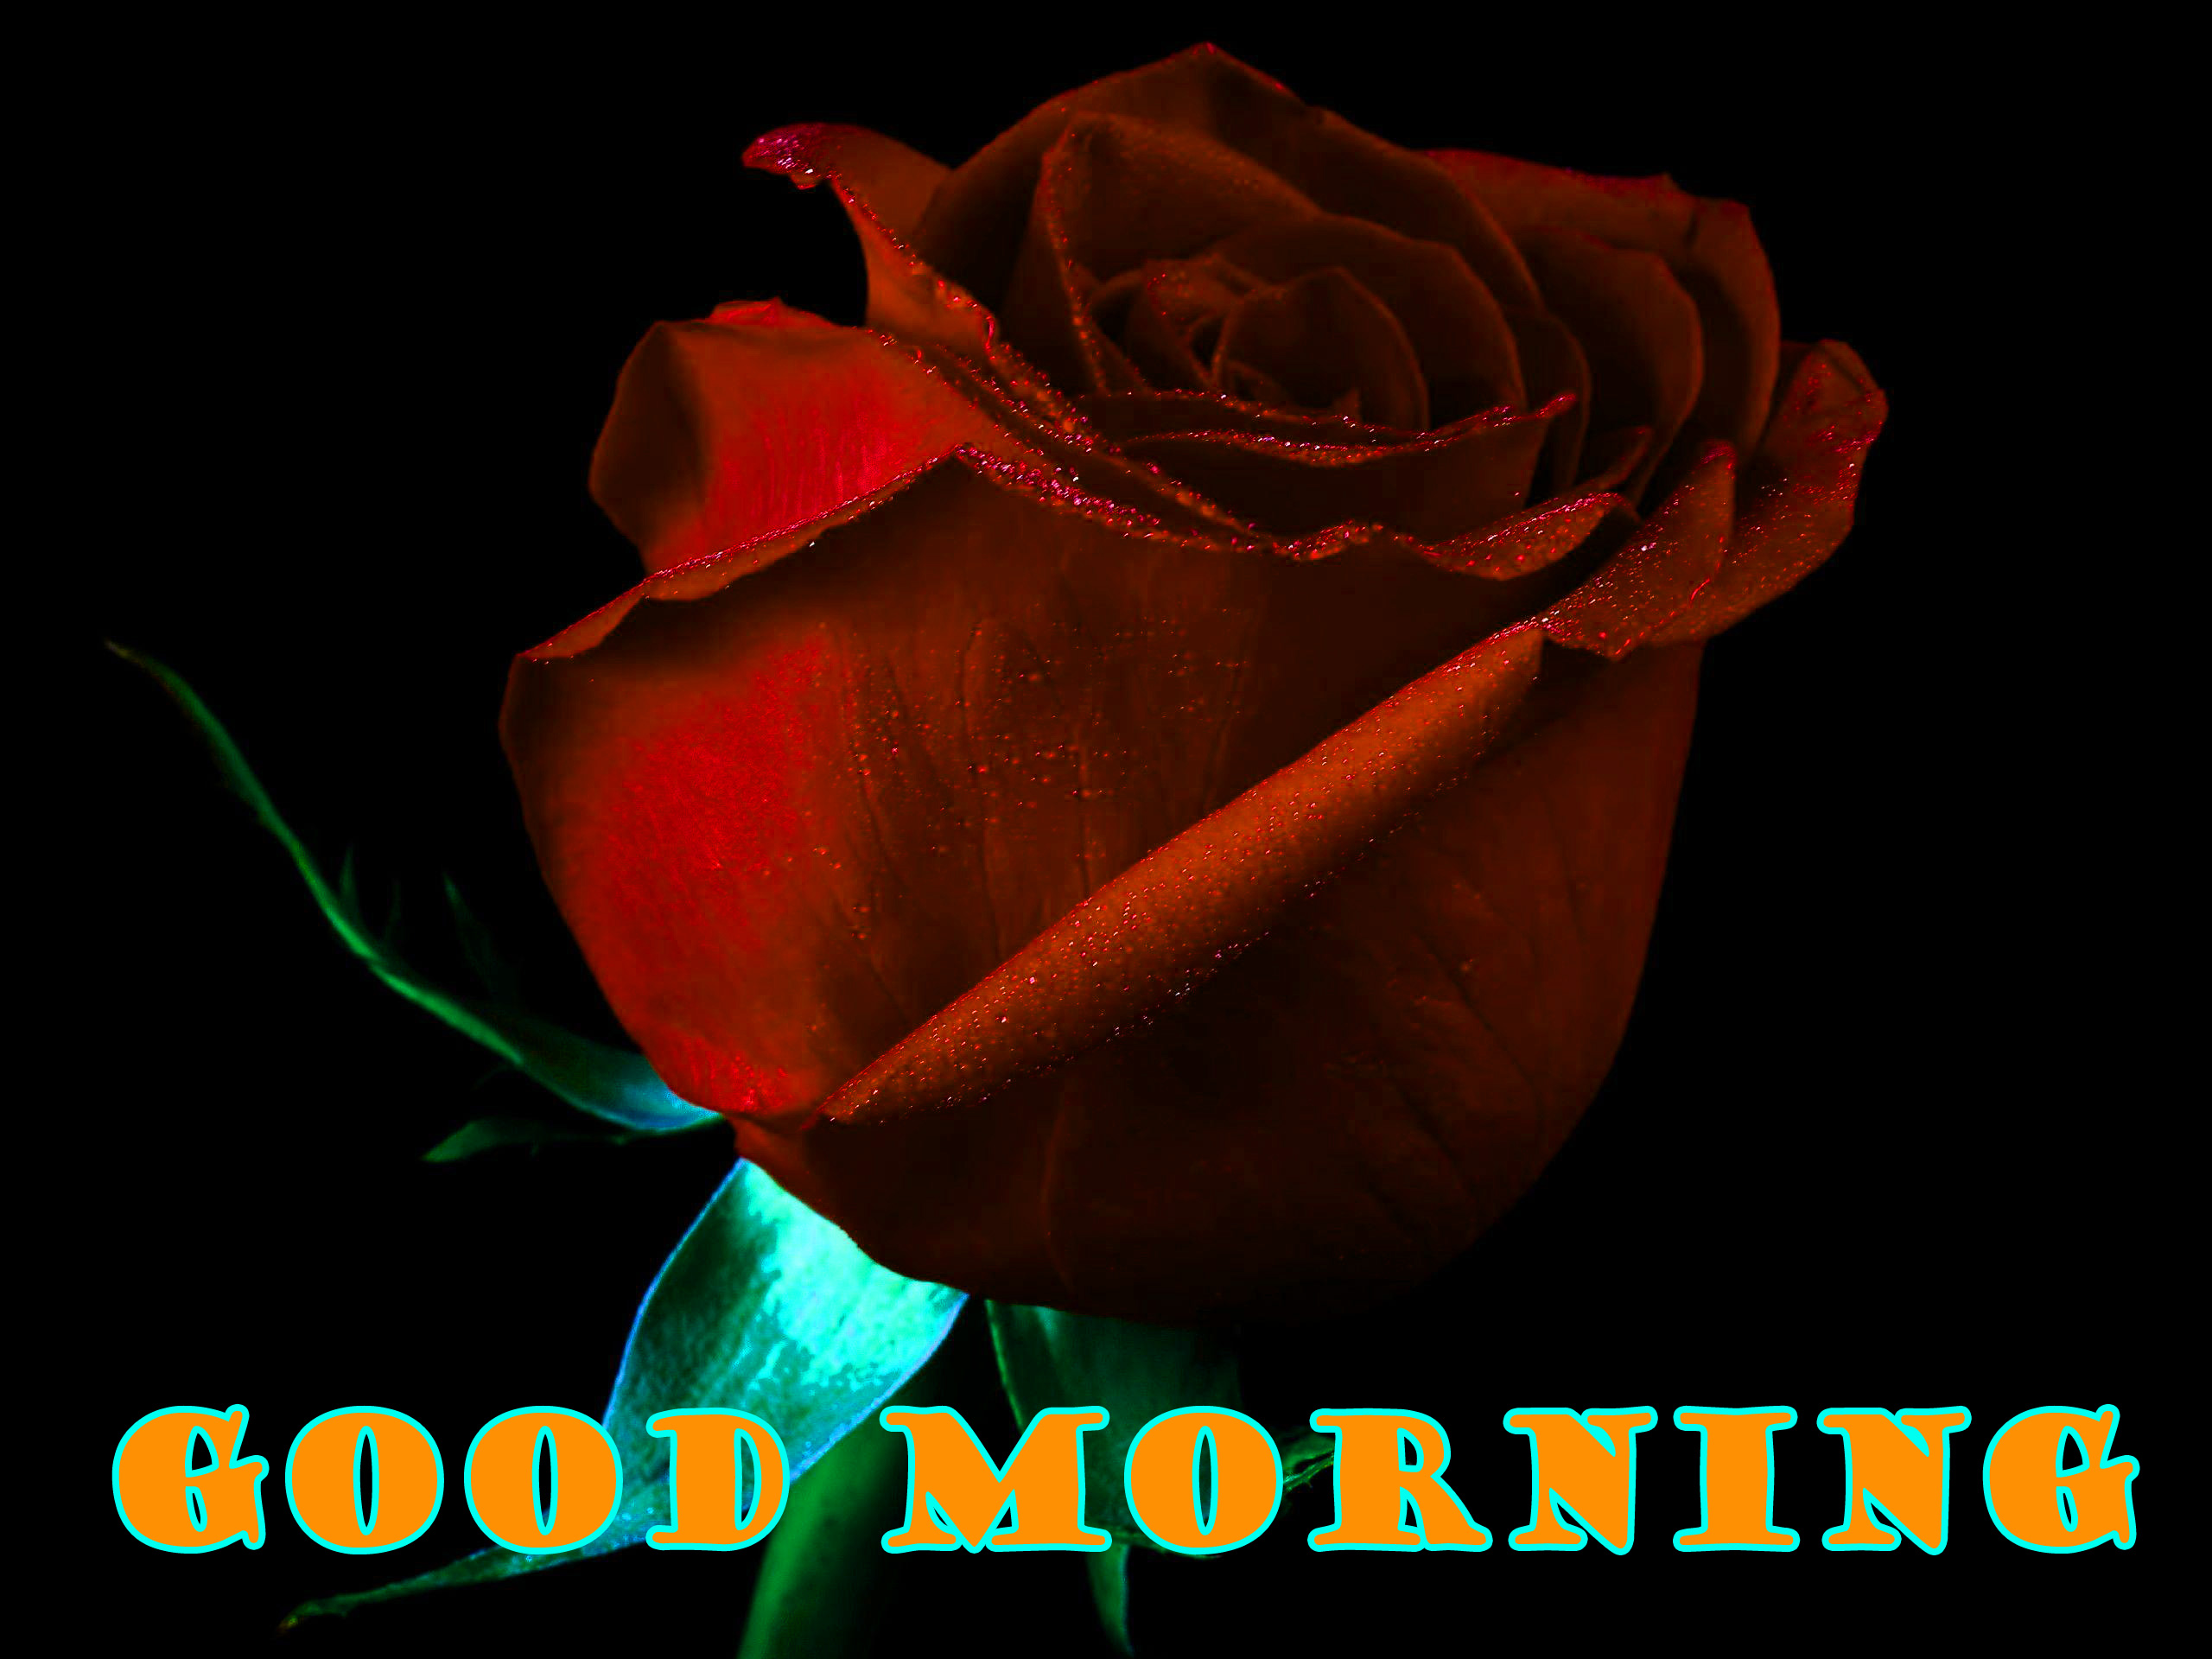 Good Morning Red Rose Photo Wallpaper Free HD Download